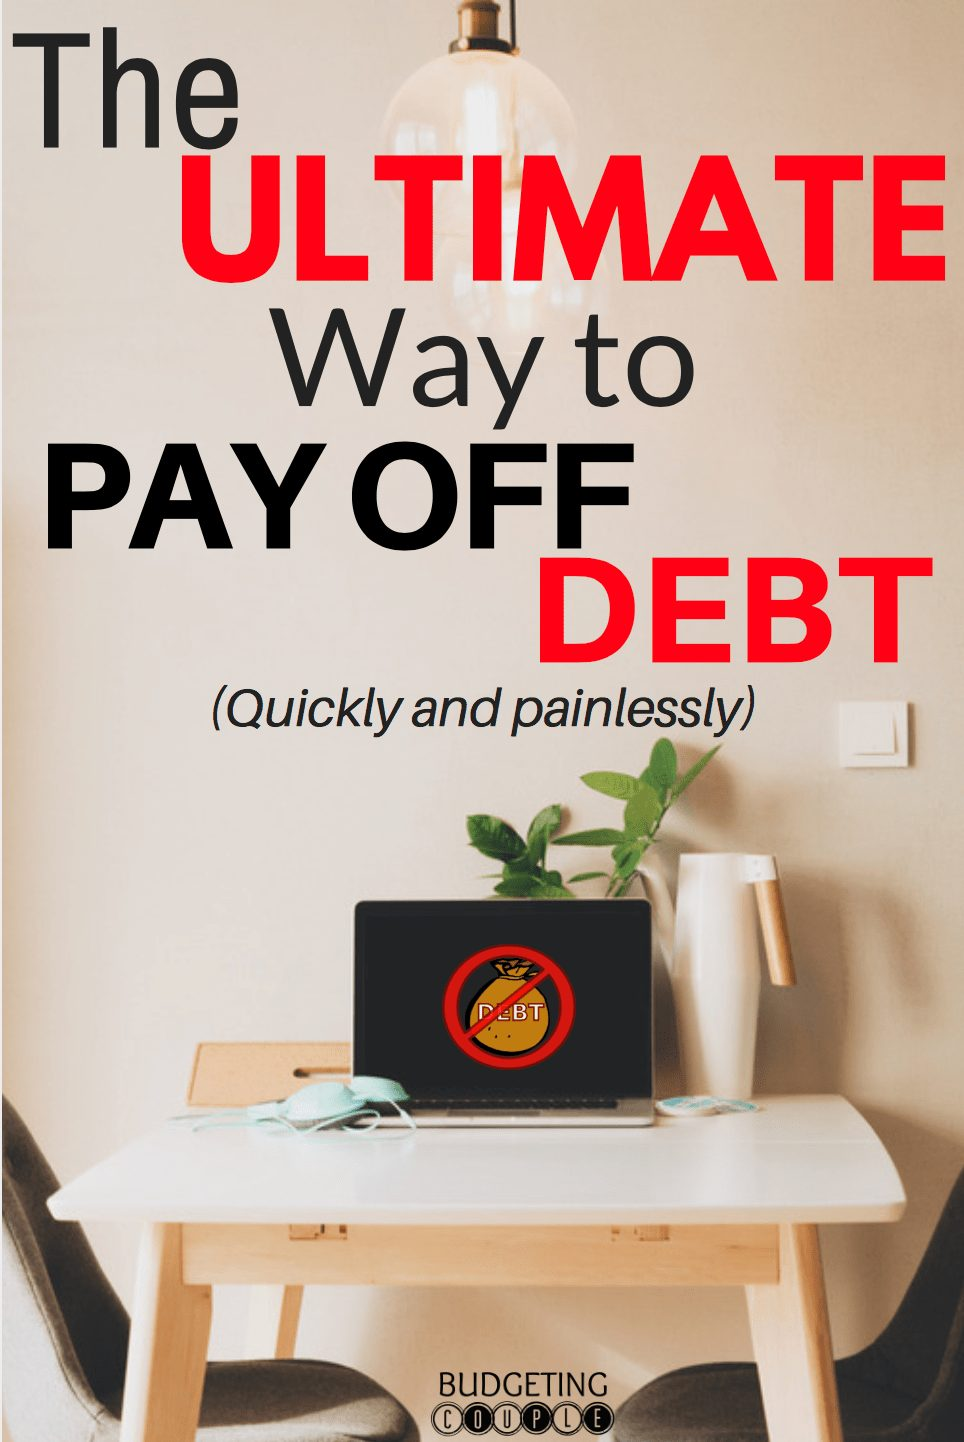 Debt Payoff, how to pay off debt, get out of debt, debt tips, debt management, drowning in debt, debt help, how to pay off debt quickly, how to get out of debt